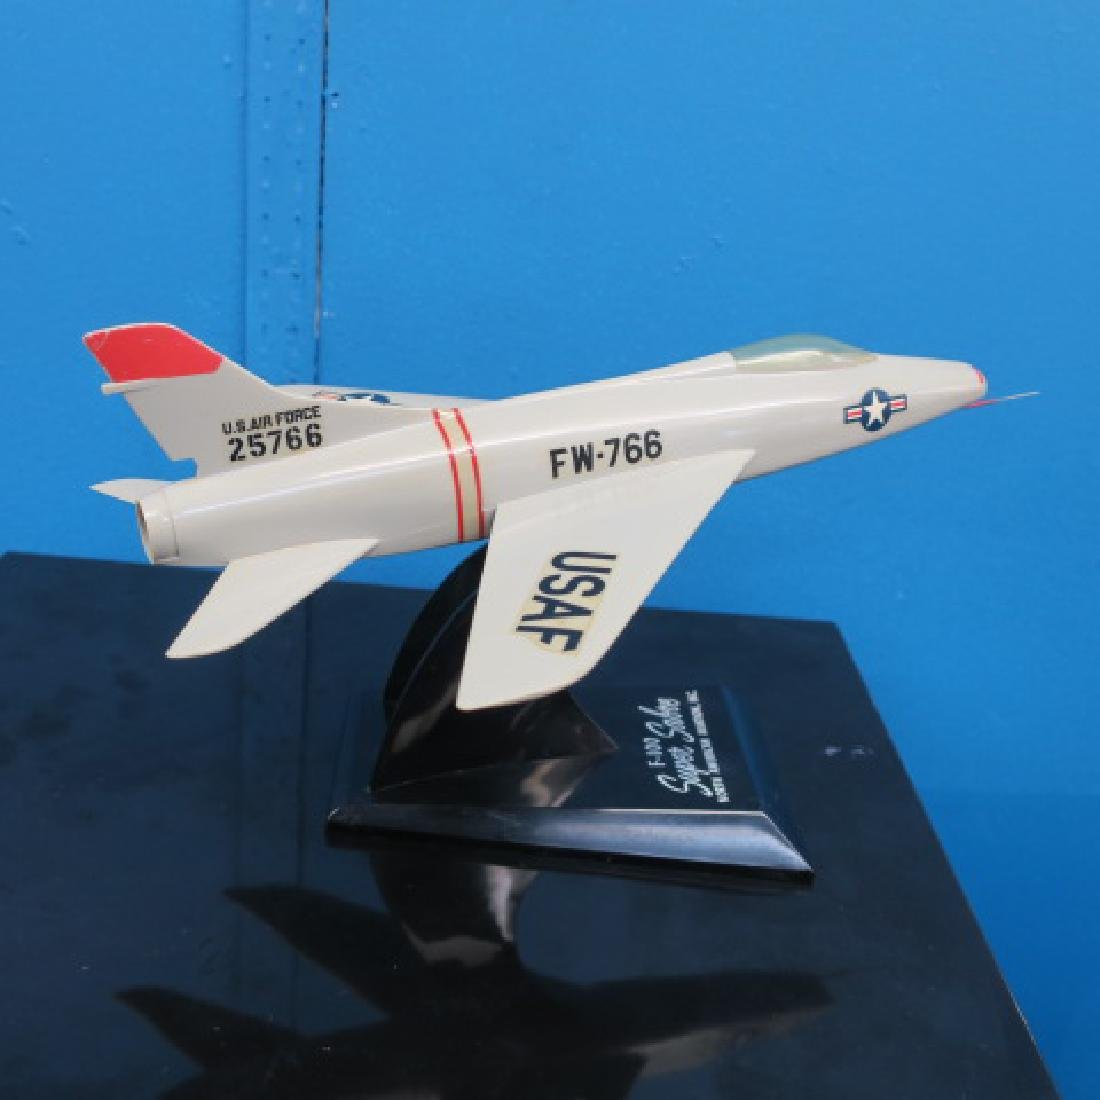 Three Manufacturers Models of F-100 series Fighters: - 3